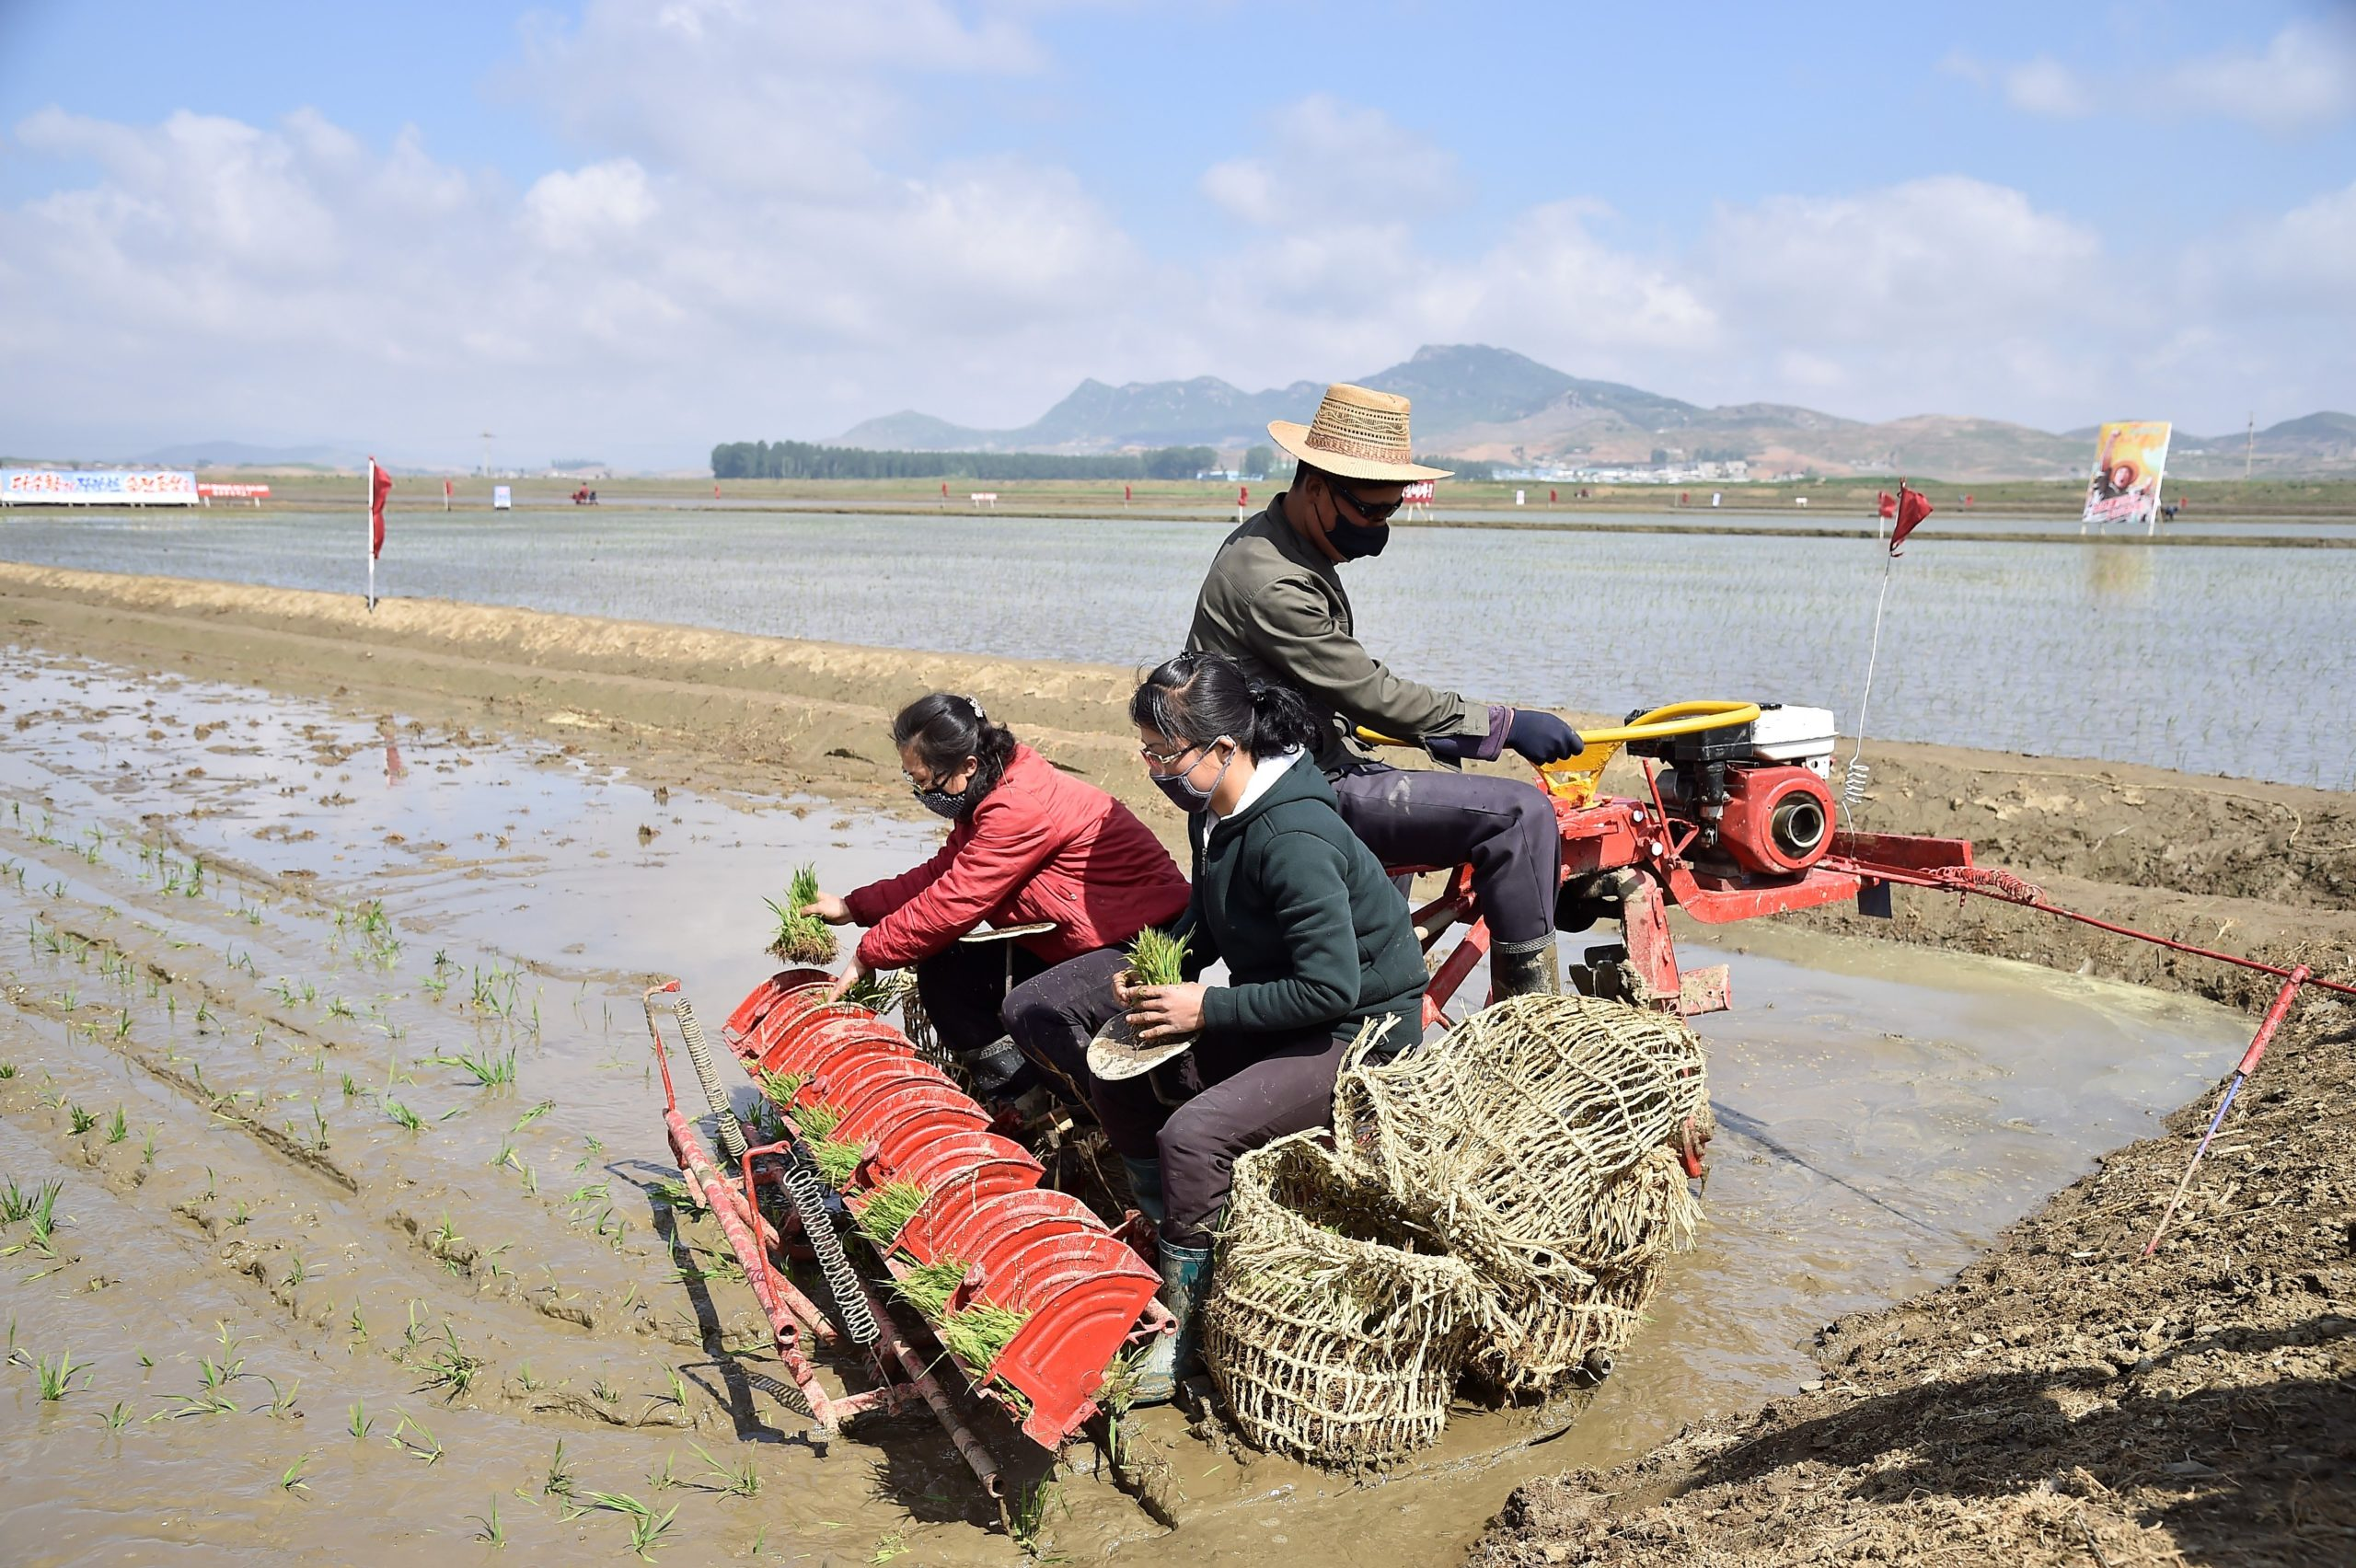 Workers plant rice at the Chongsan Cooperative Farm in the Kangso district of Nampho City on May 12, 2020. (Photo by KIM Won Jin / AFP) (Photo by KIM WON JIN/AFP via Getty Images)